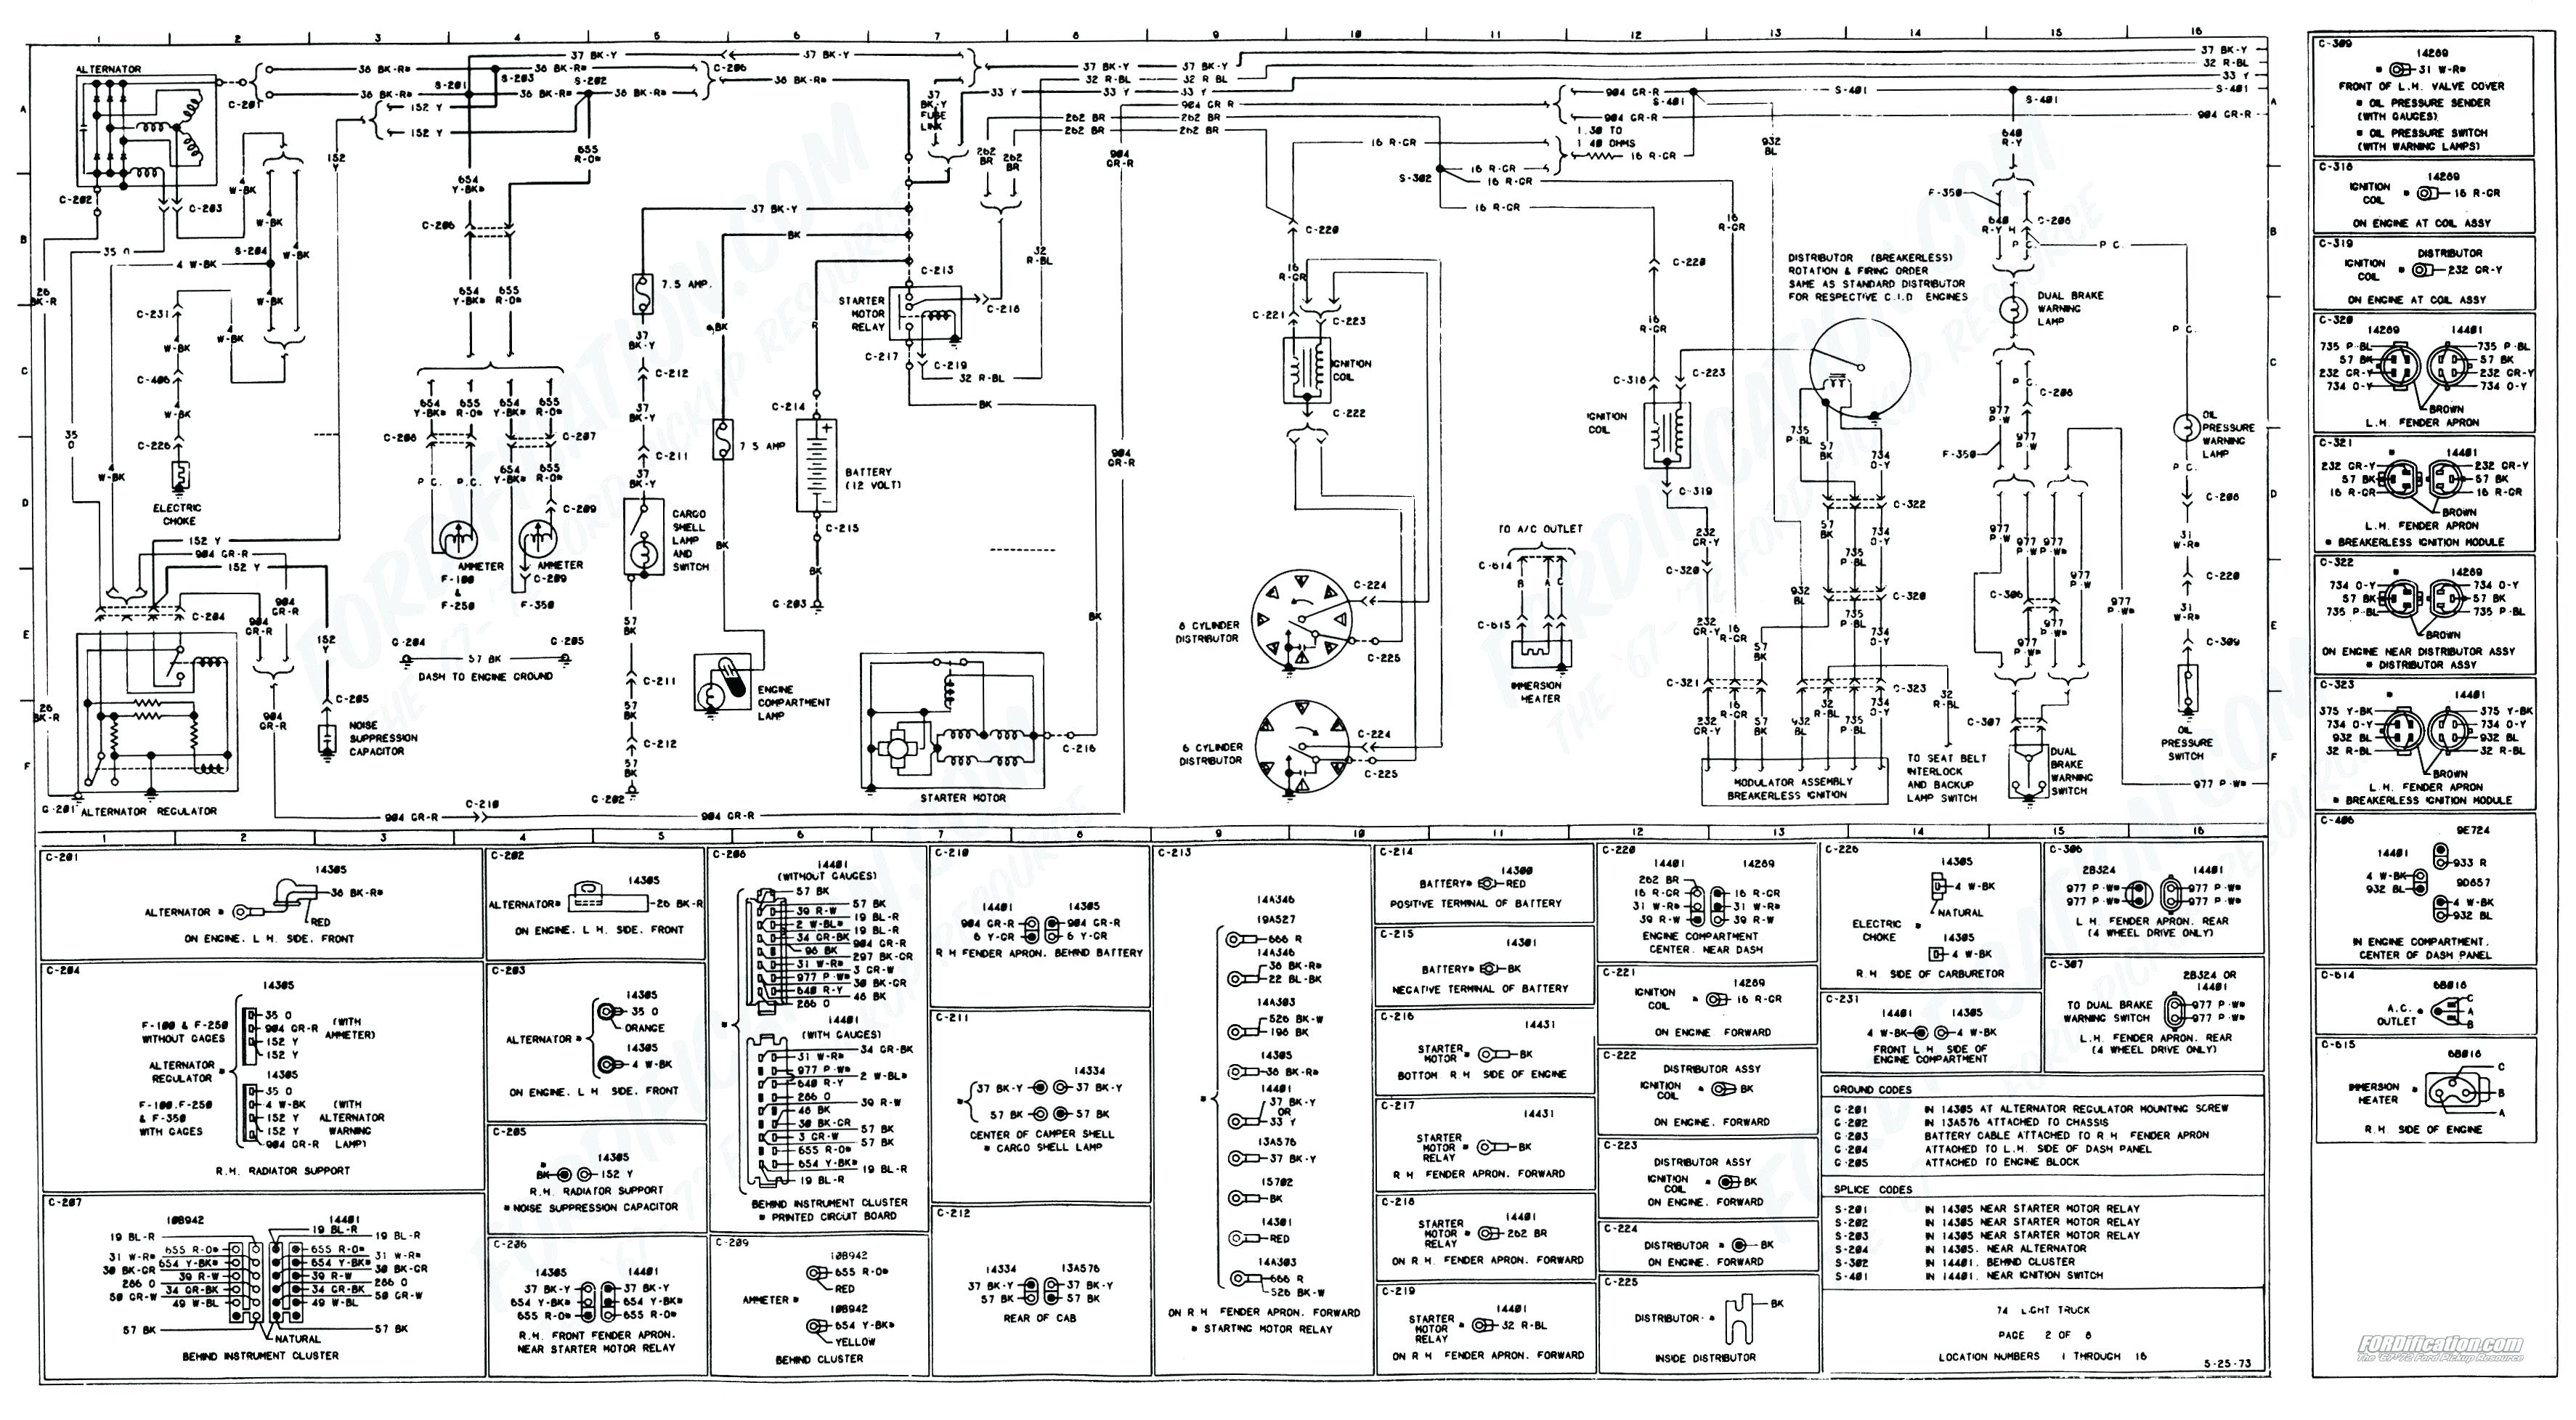 Ford F650 Wiring Diagram from wholefoodsonabudget.com